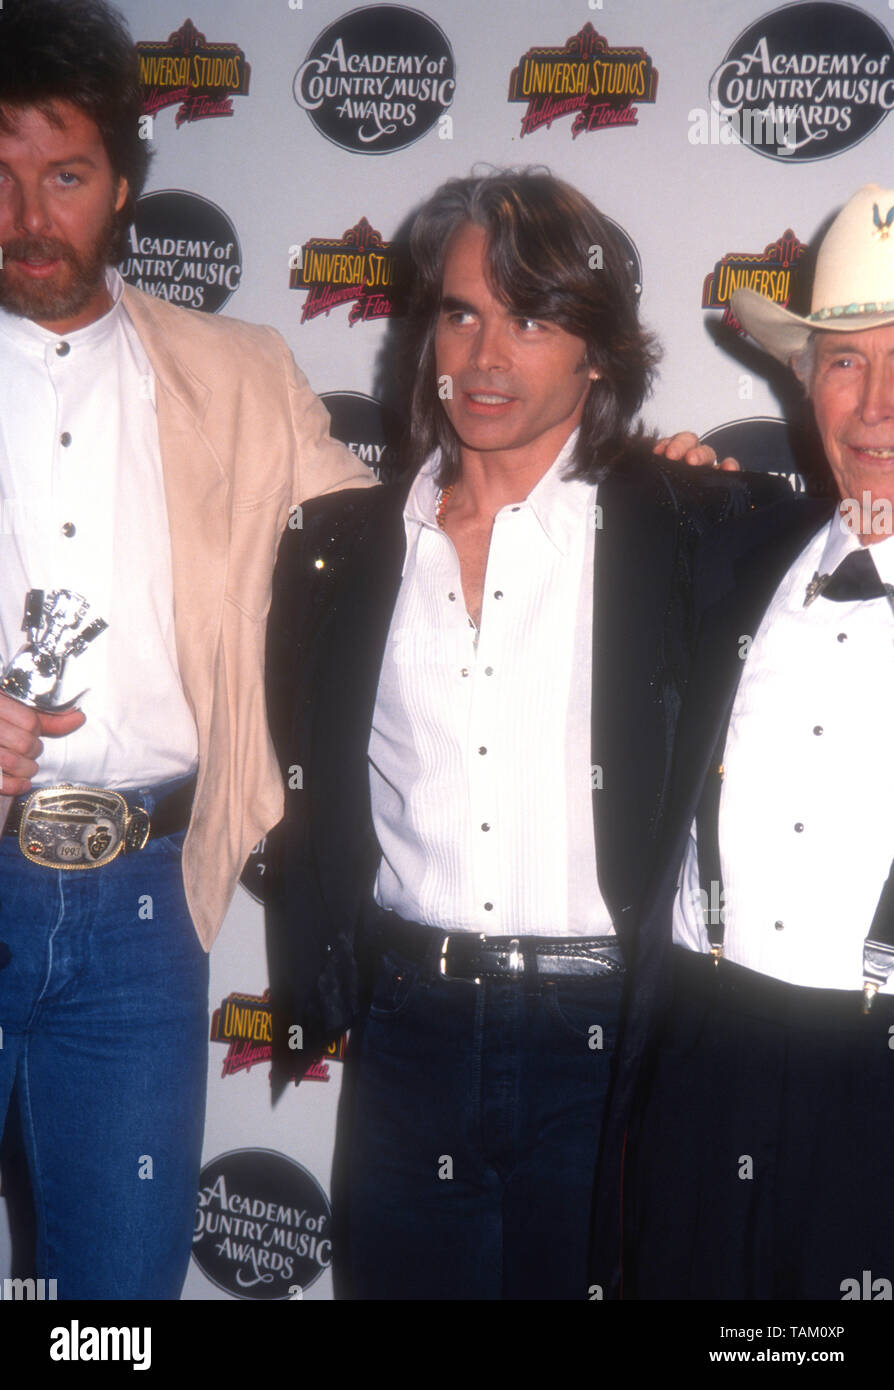 hal ketchum high resolution stock photography and images alamy https www alamy com universal city california usa 3rd may 1994 singer hal ketchum attends the 29th annual academy of country music awards on may 3 1994 at the gibson amphitheatre in universal city california usa photo by barry kingalamy stock photo image247531502 html